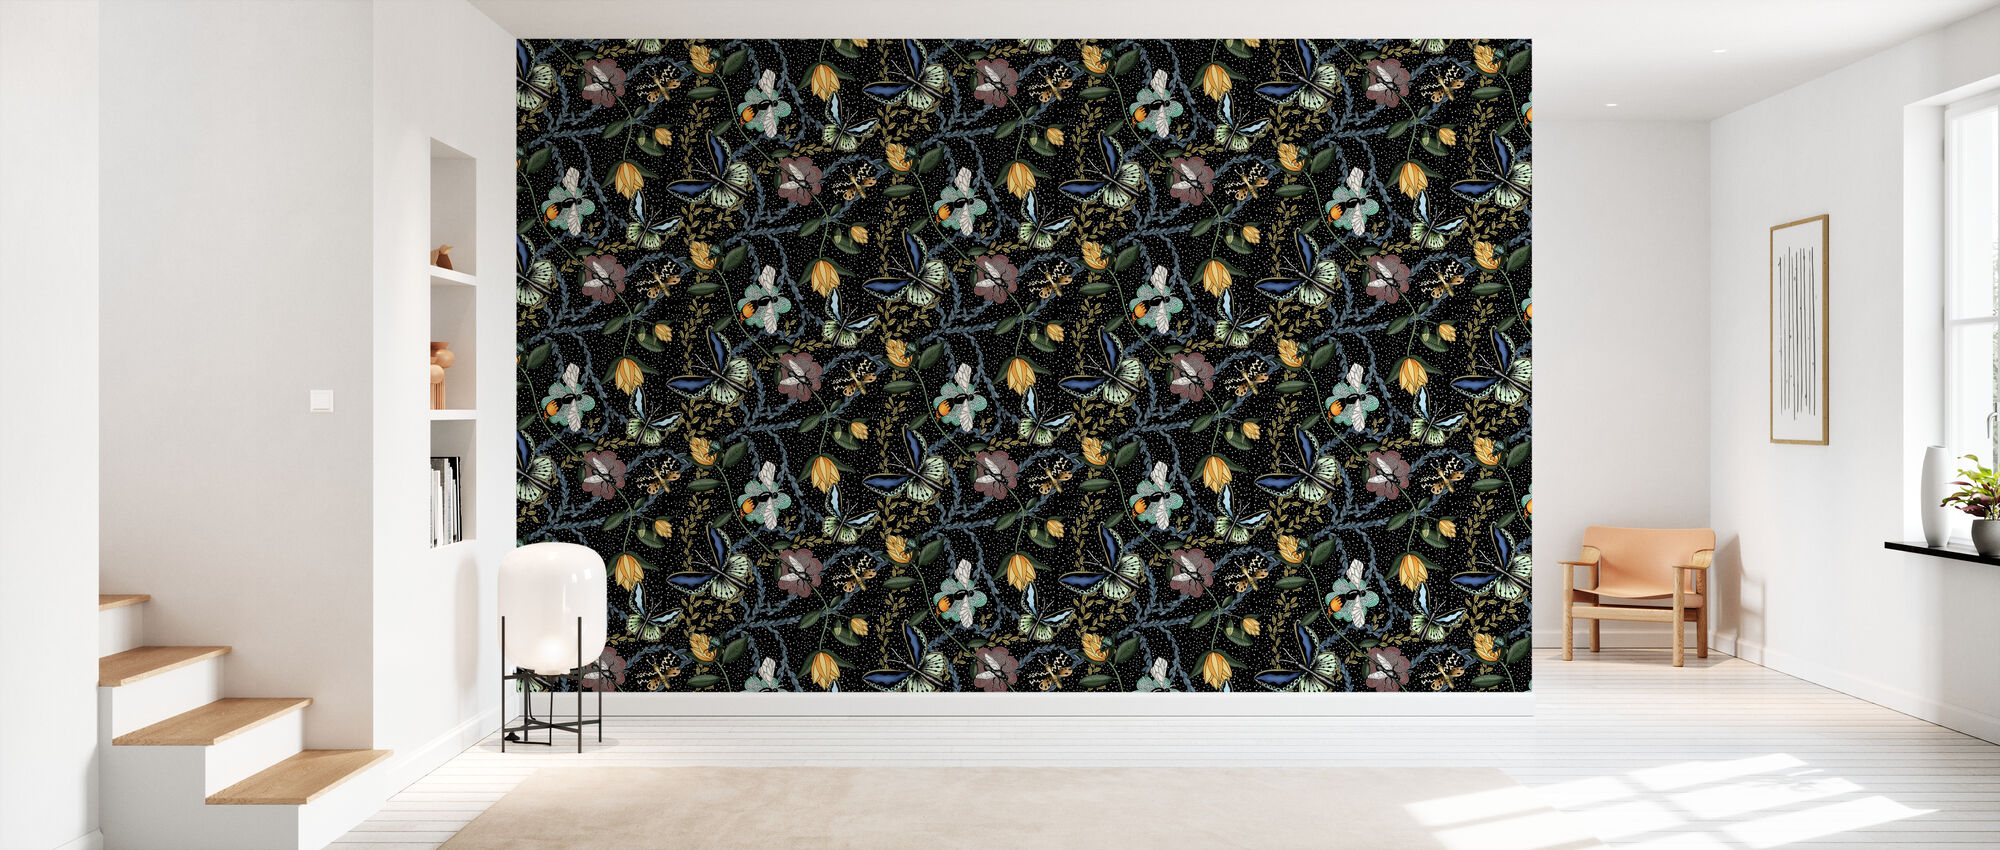 Bugs & Butterflies Black with Dots - Large - Wallpaper - Hallway